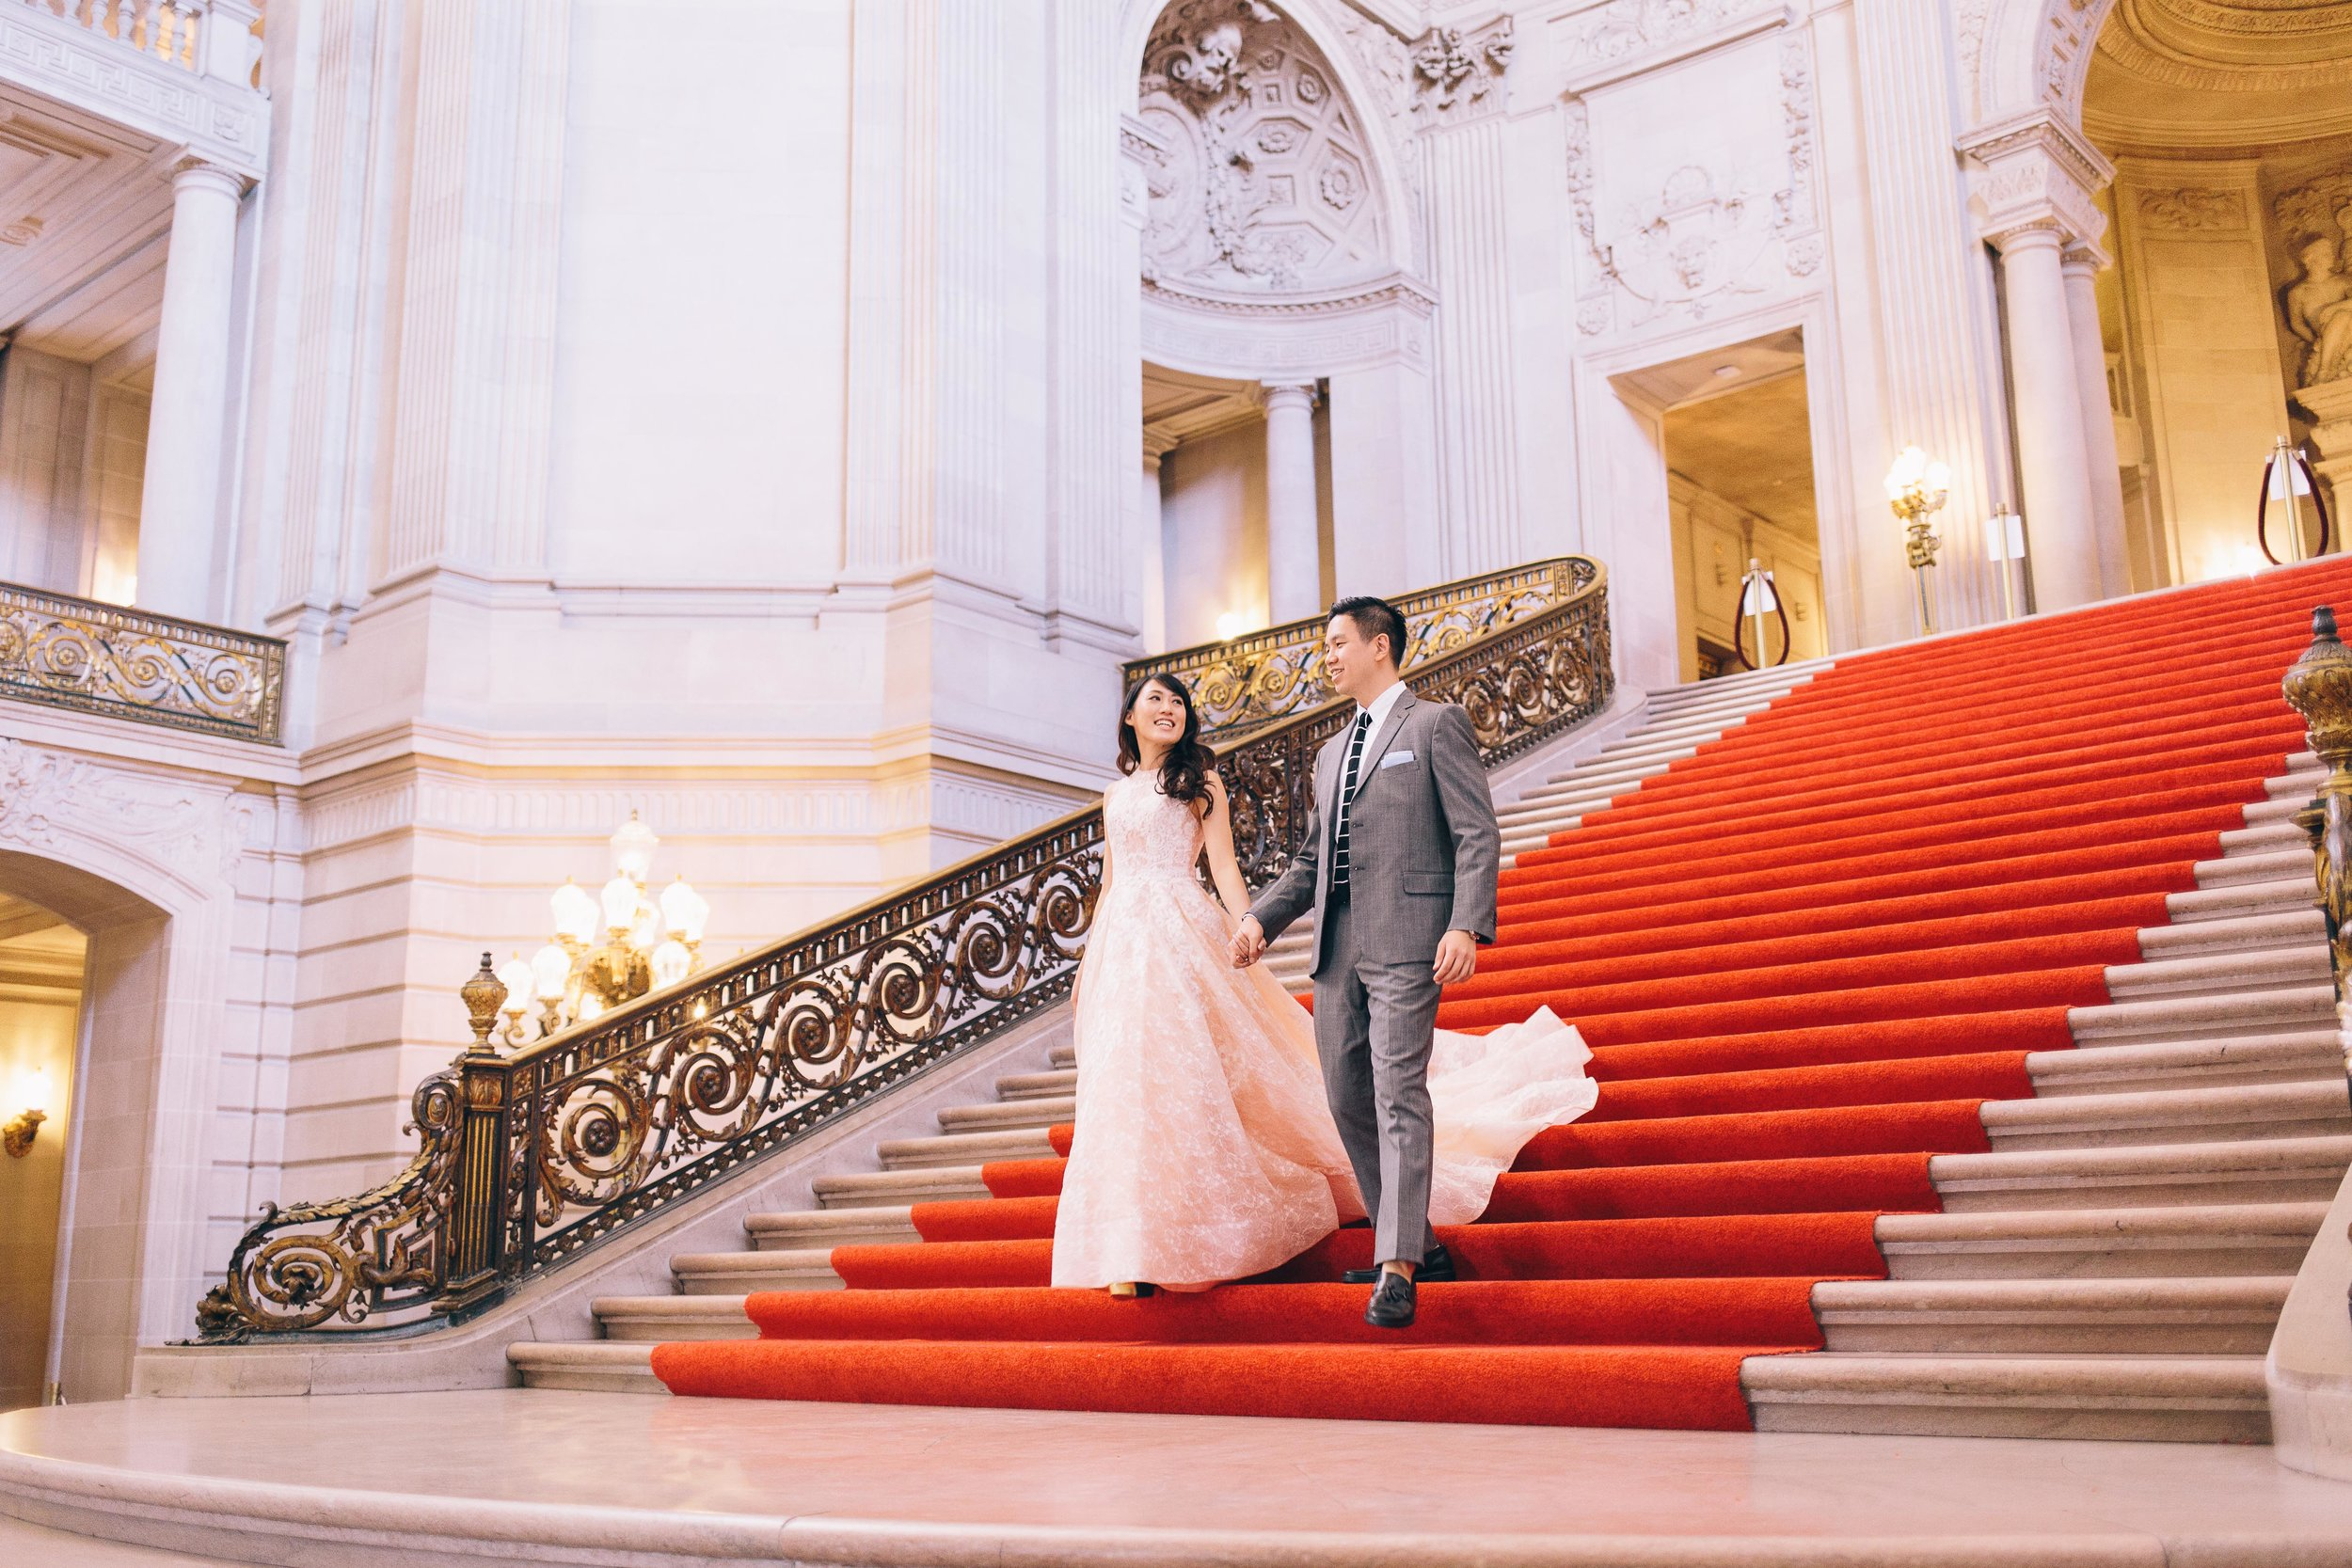 Pre-Wedding Photos in San Francisco by JBJ Pictures Pre-Wedding Photographer, Engagement Session and Wedding Photography in Napa, Sonoma, SF Bay Area (20).jpg